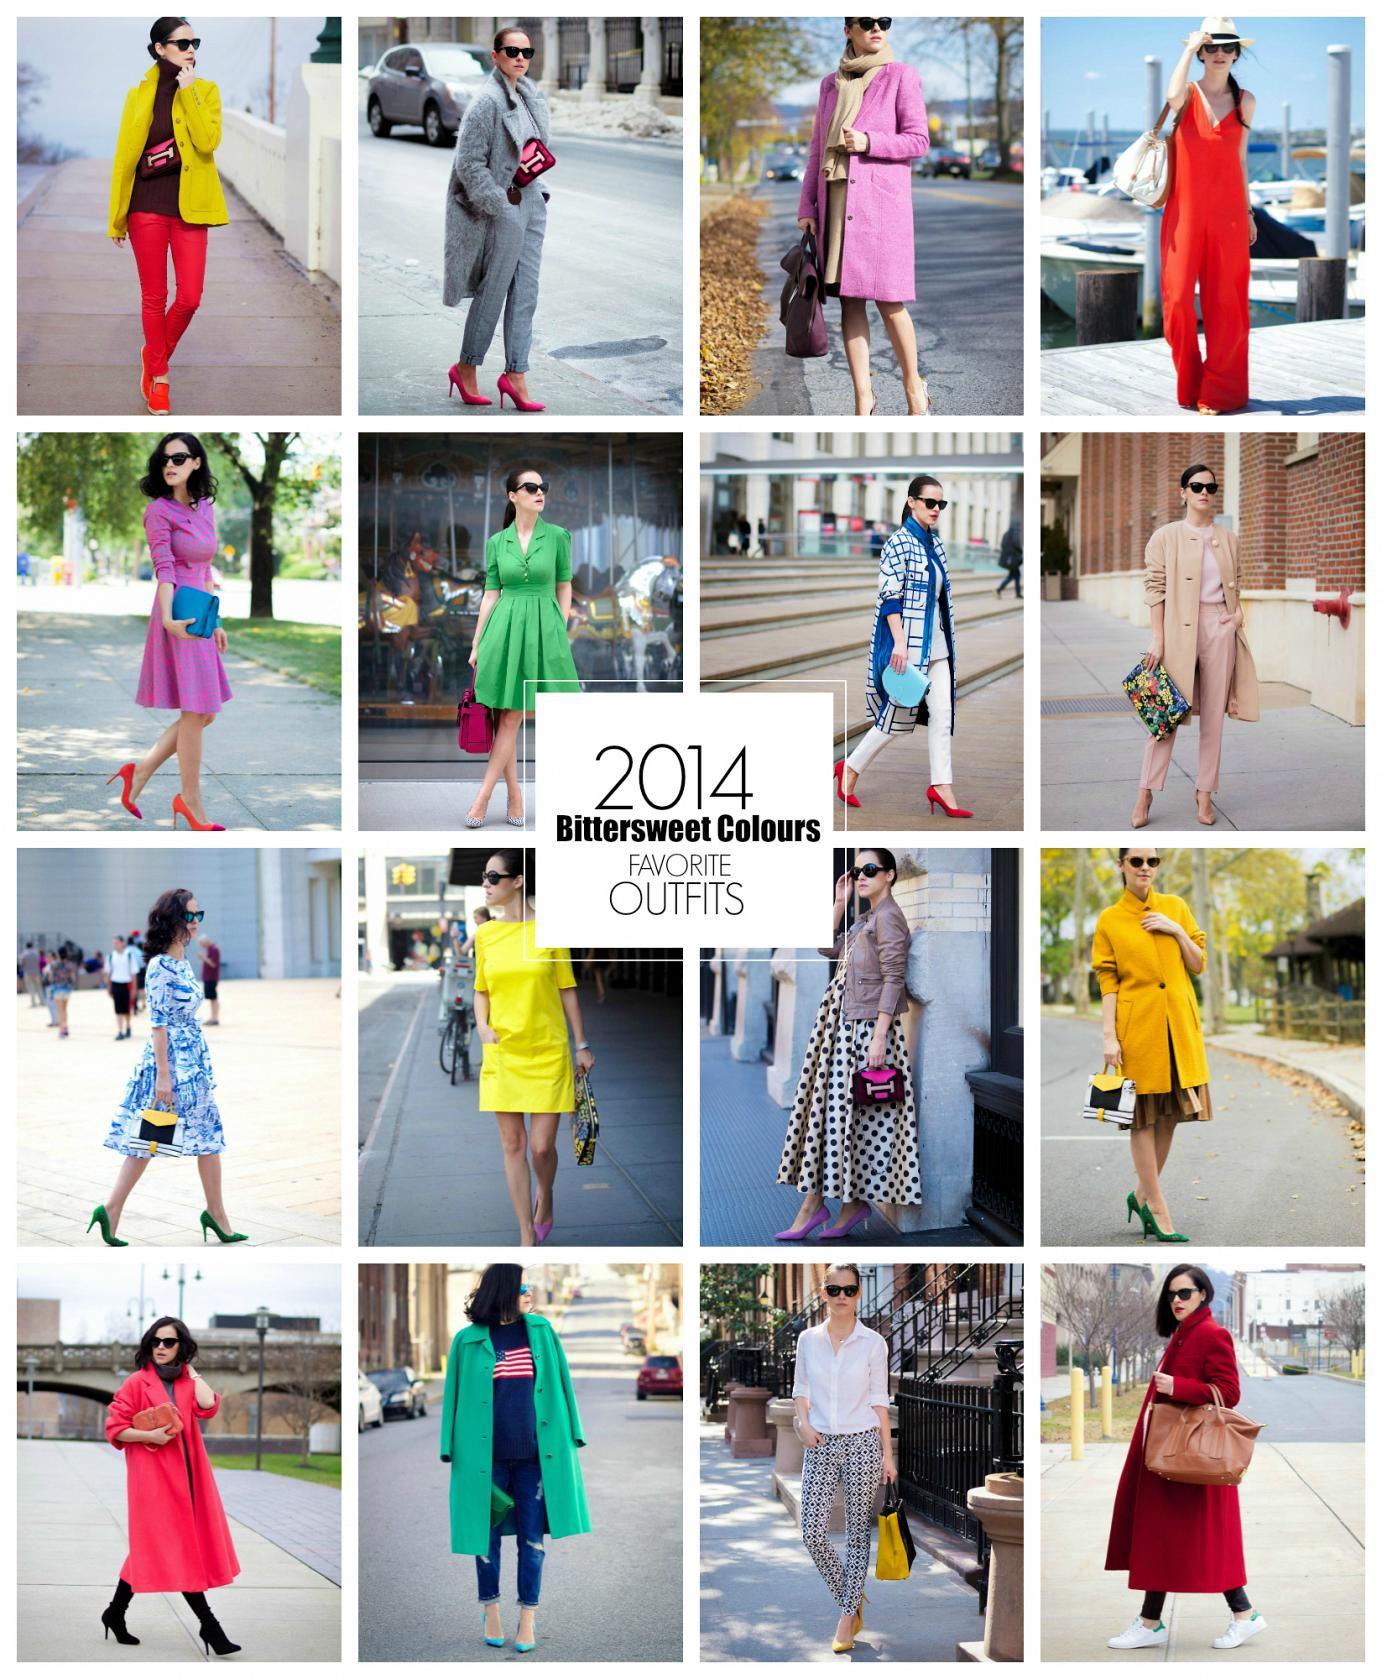 bittersweet colours, 2014 outfits, colors, street style, fall style, winter style, summer style, colorful coats, colorful shoes